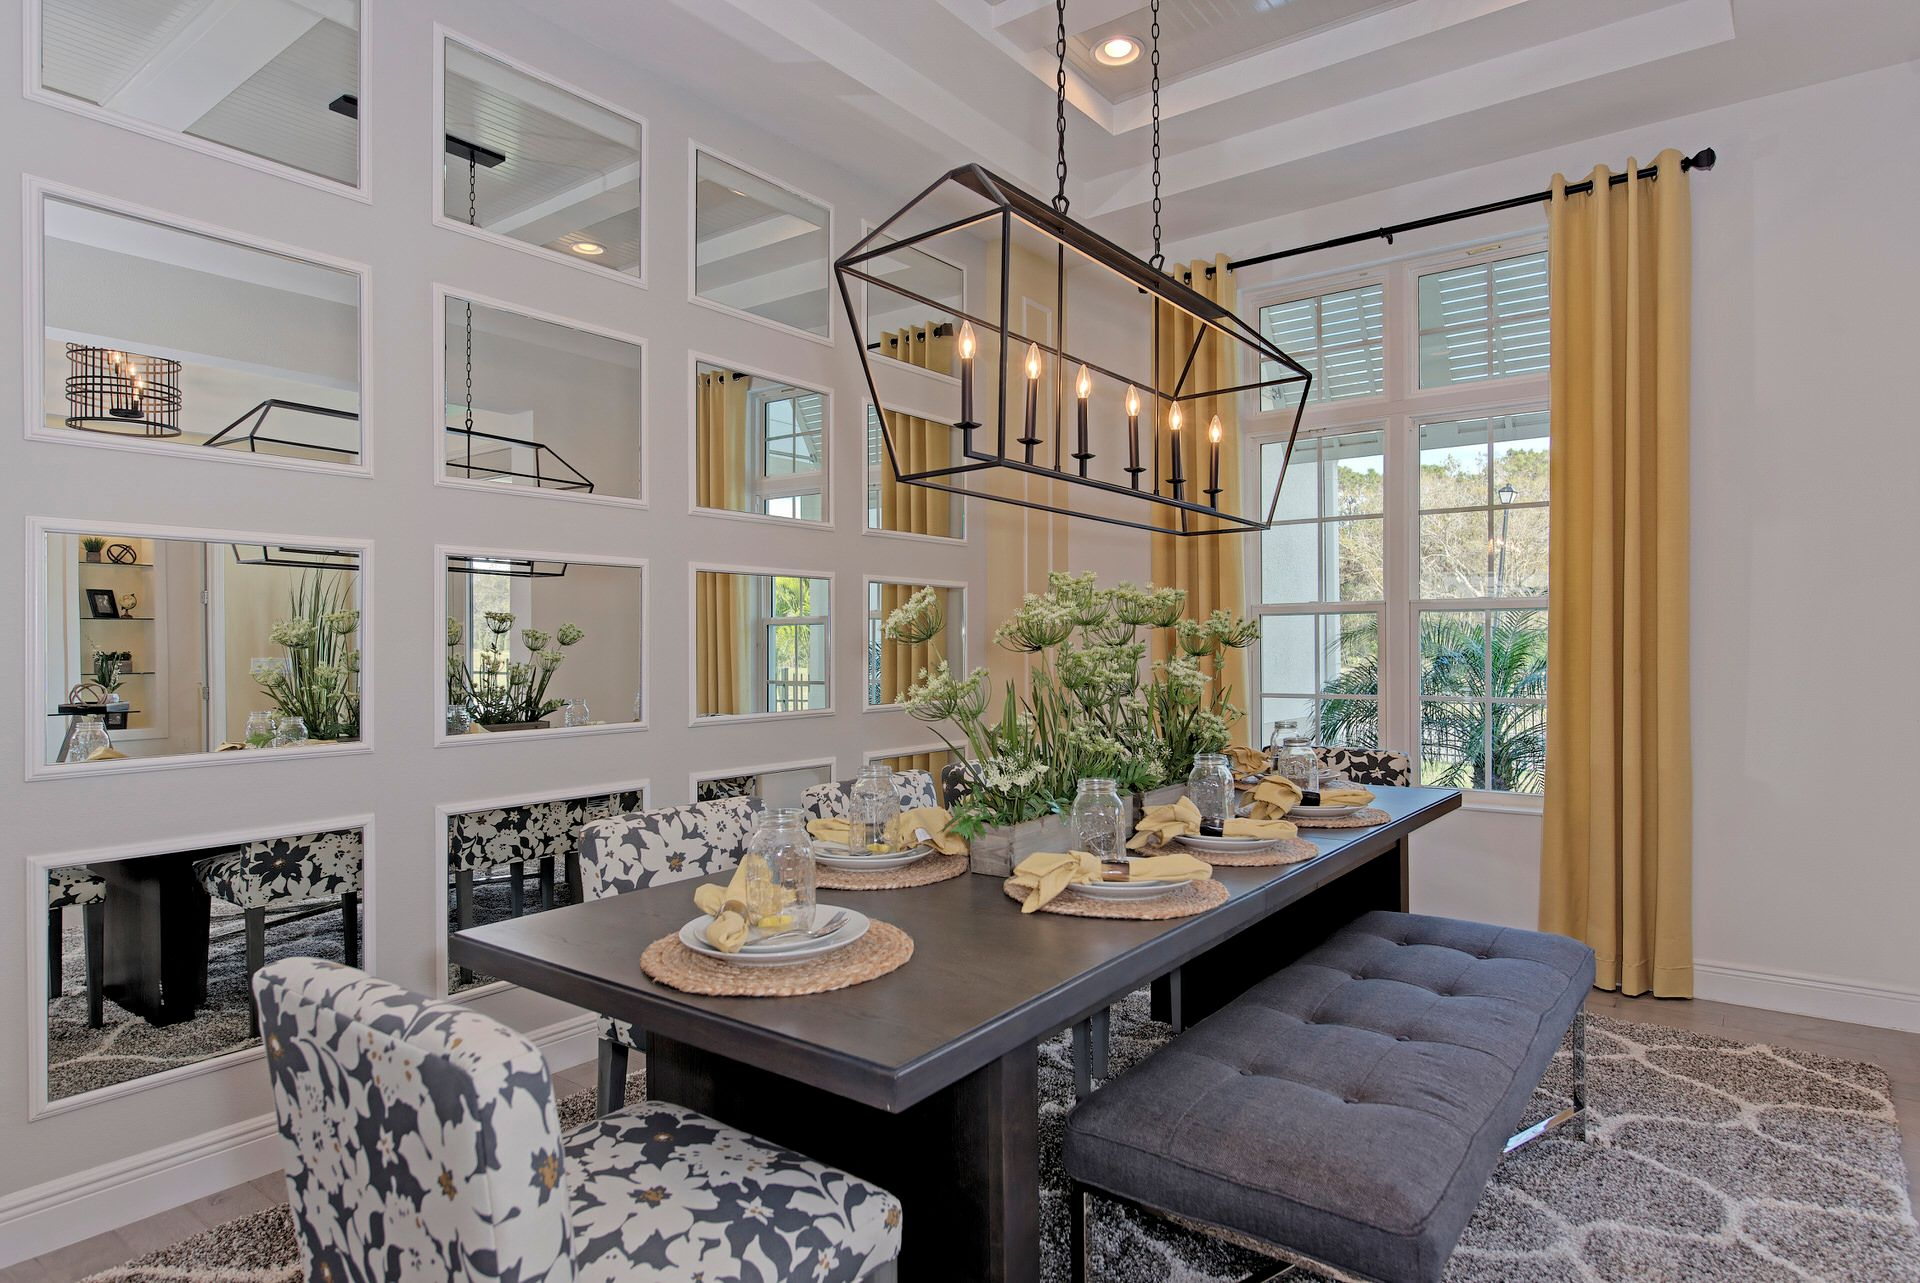 Living Area featured in the Belize By Medallion Home in Sarasota-Bradenton, FL